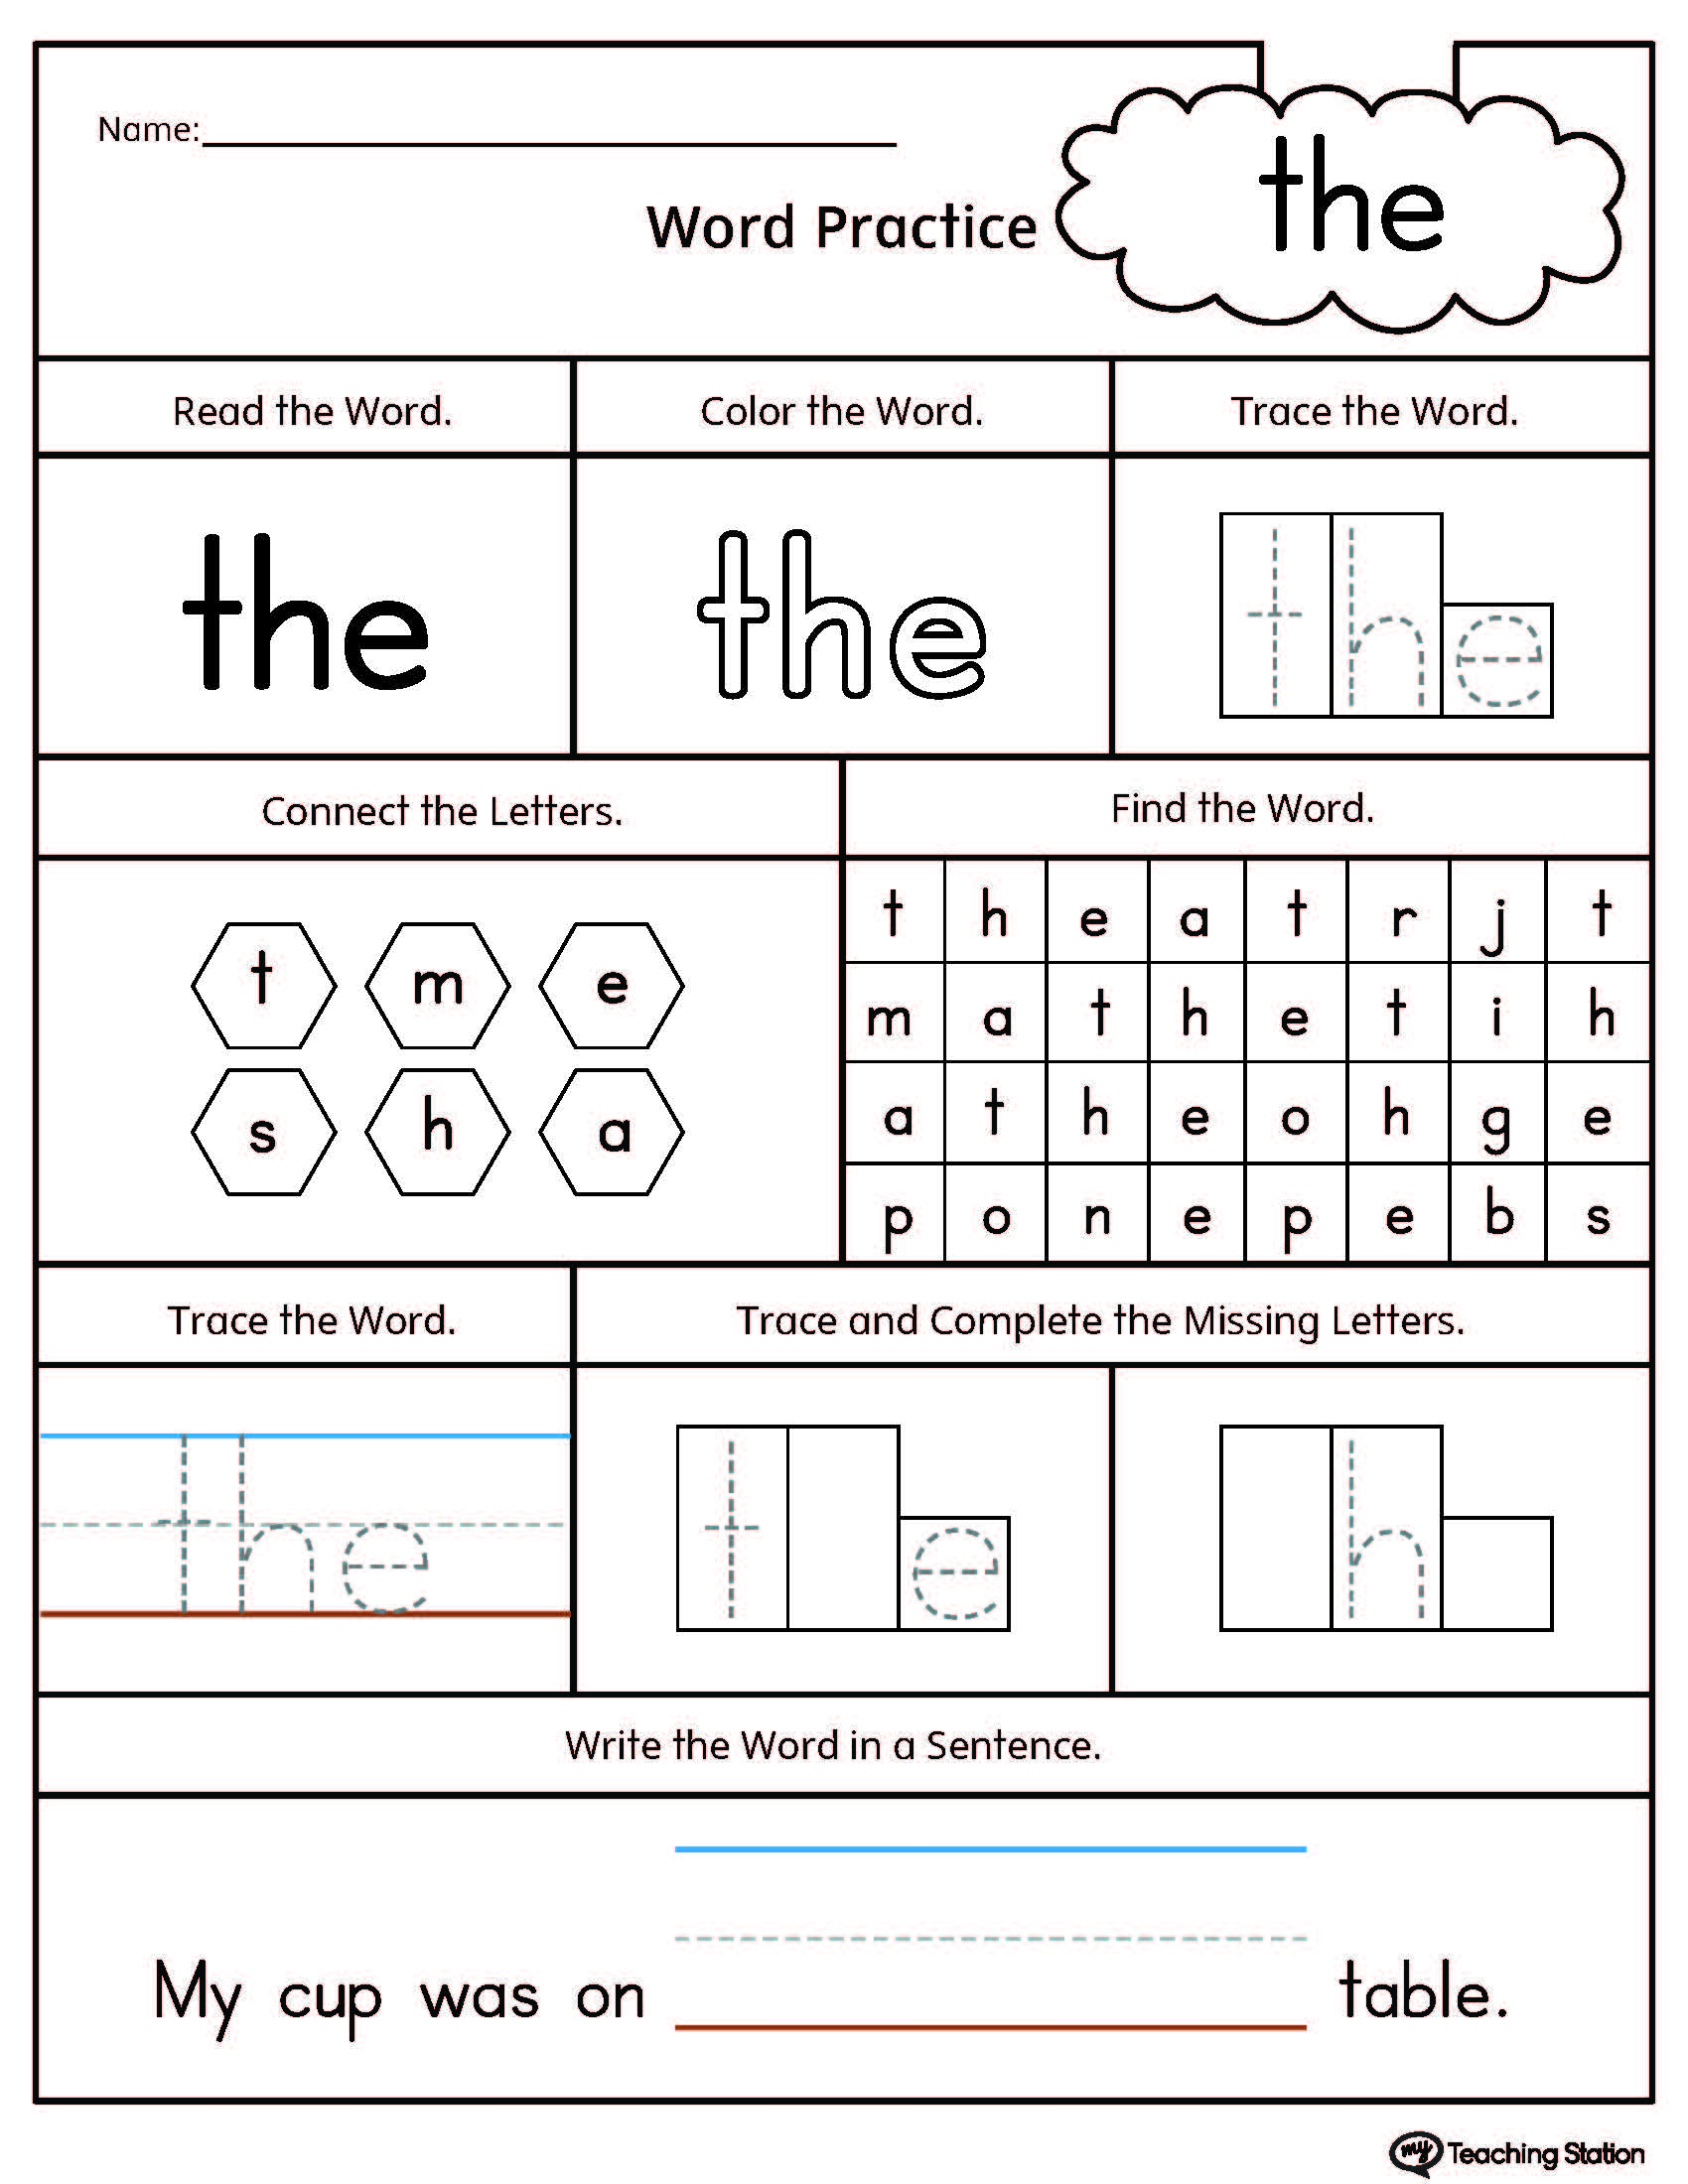 worksheet High Frequency Words Worksheets high frequency words printable worksheets myteachingstation com sight word the worksheet